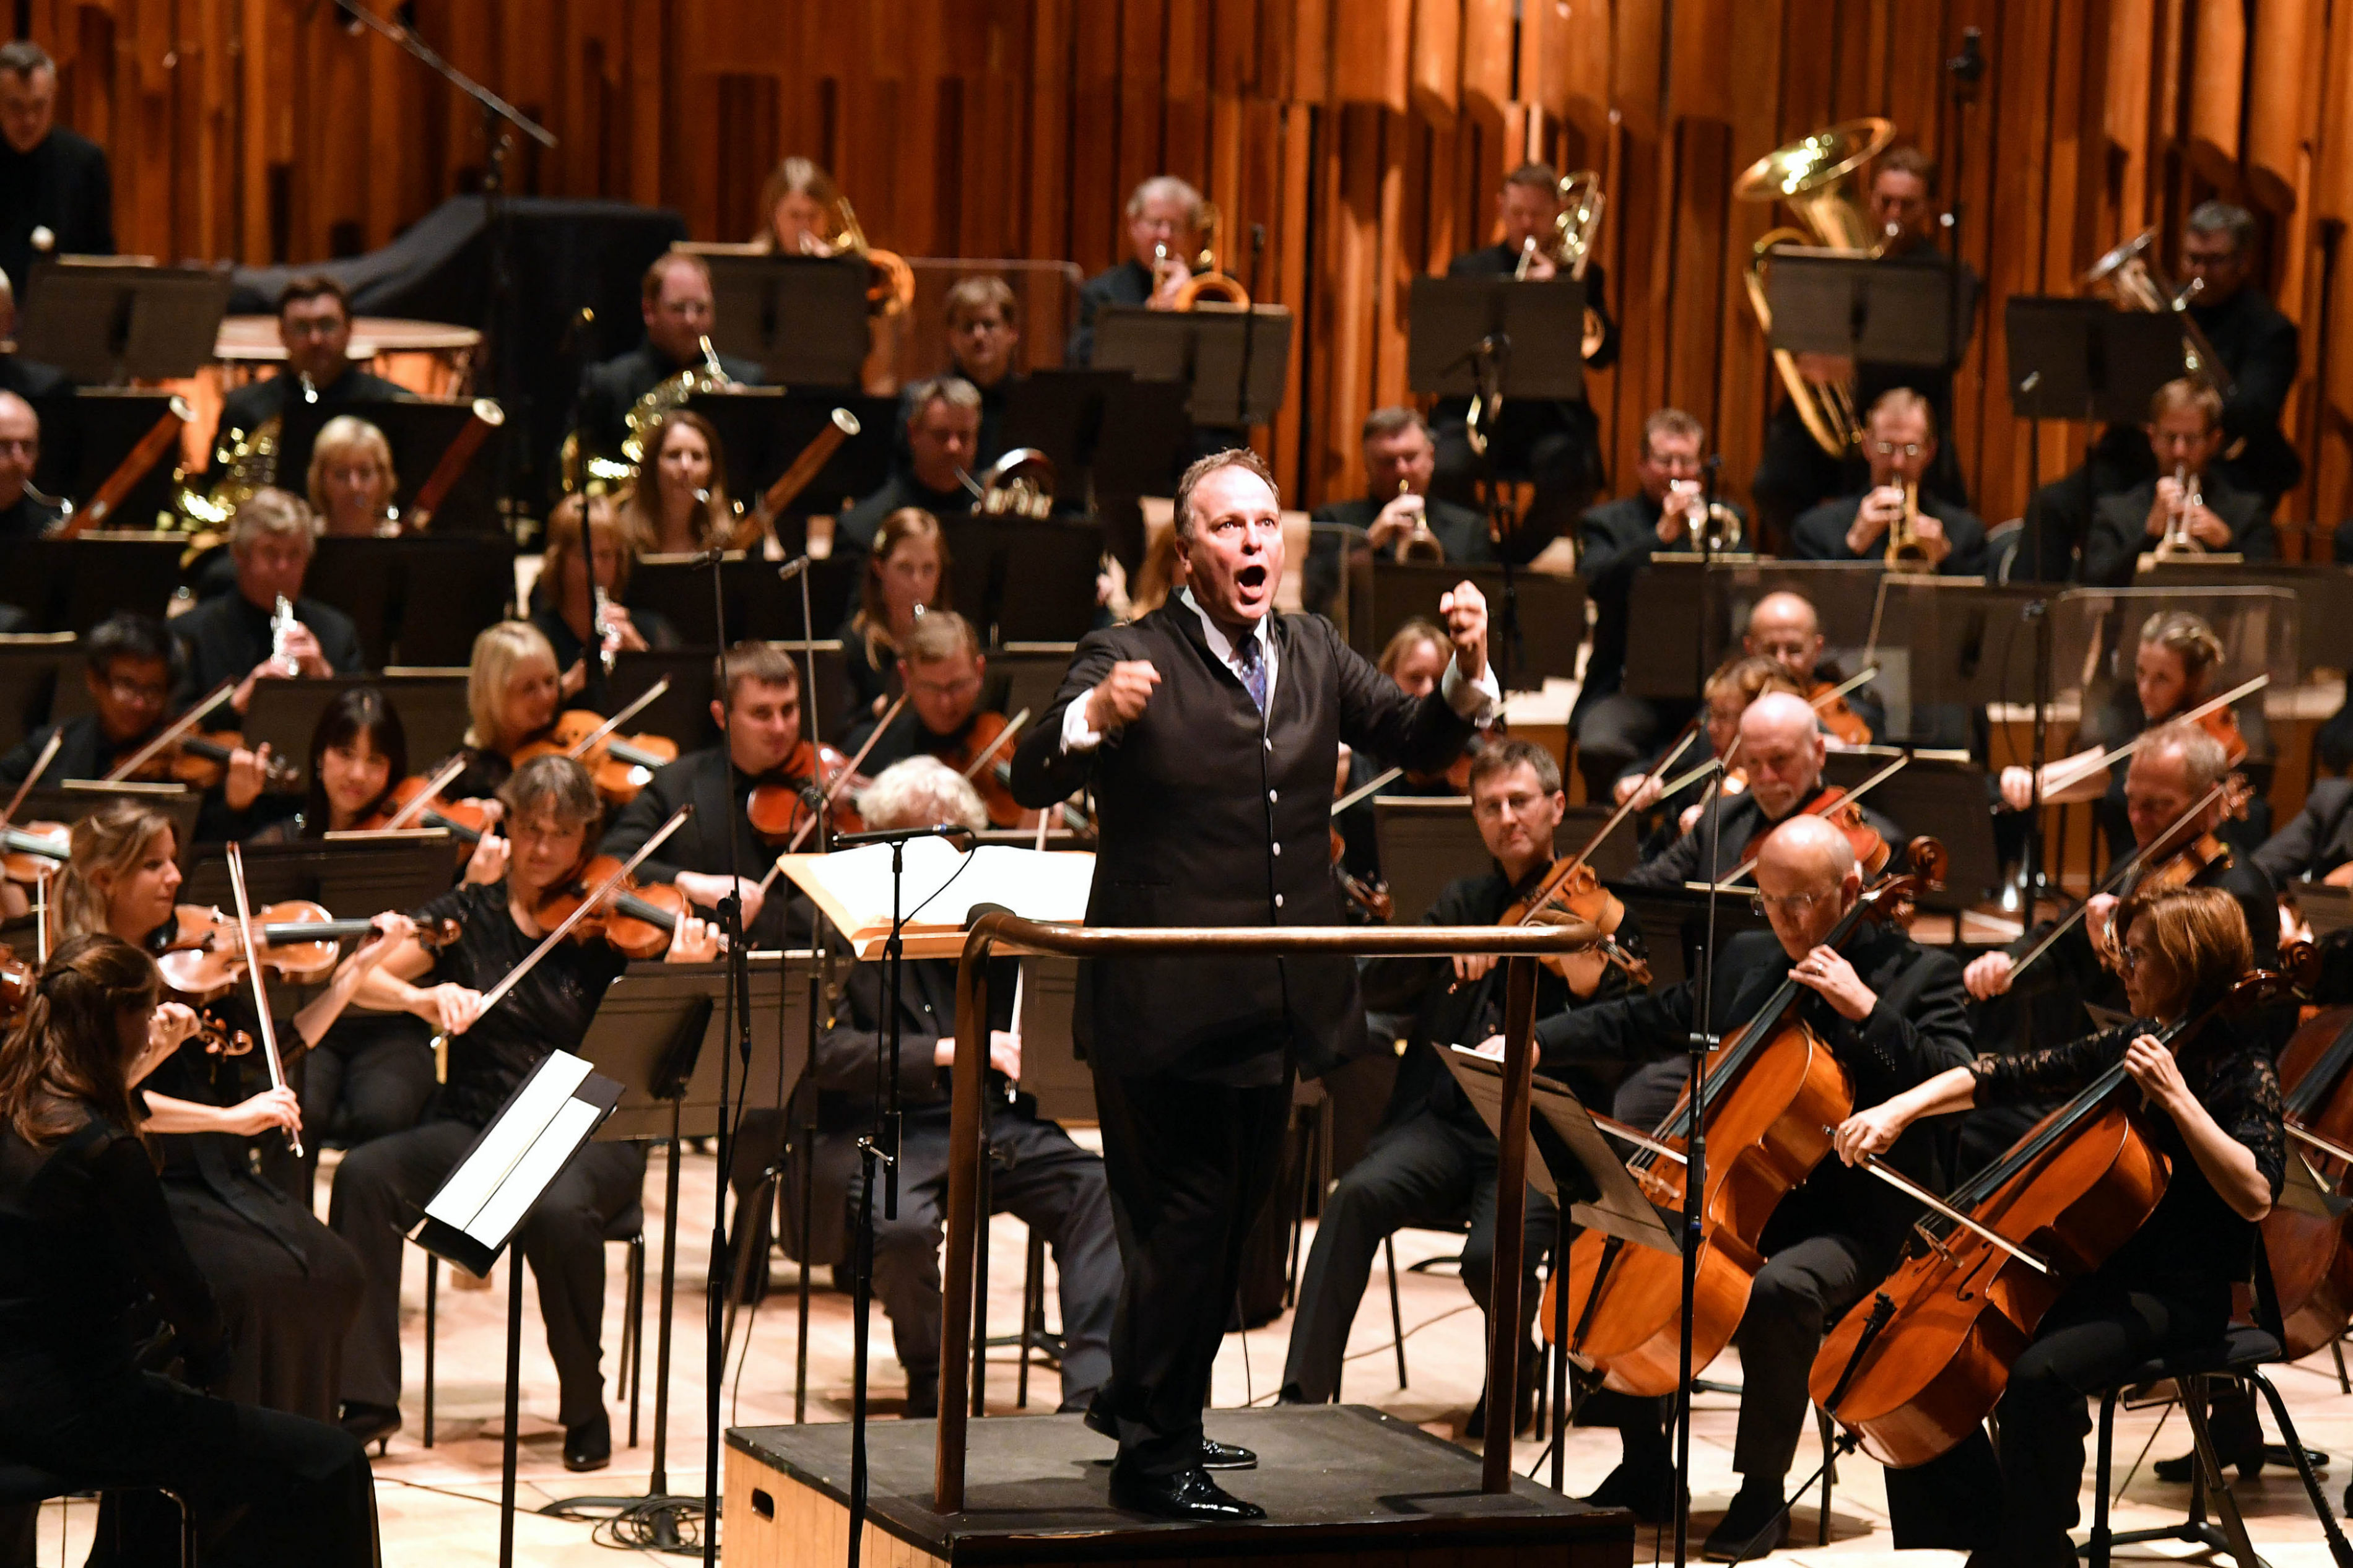 The BBC Symphony Orchestra conducted by Sakari Oramo 'Happy 70th Anniversary' to Radio 3, at the Barbican Hall, on 28th September 2016. Photographer: Mark Allan. © BBC.